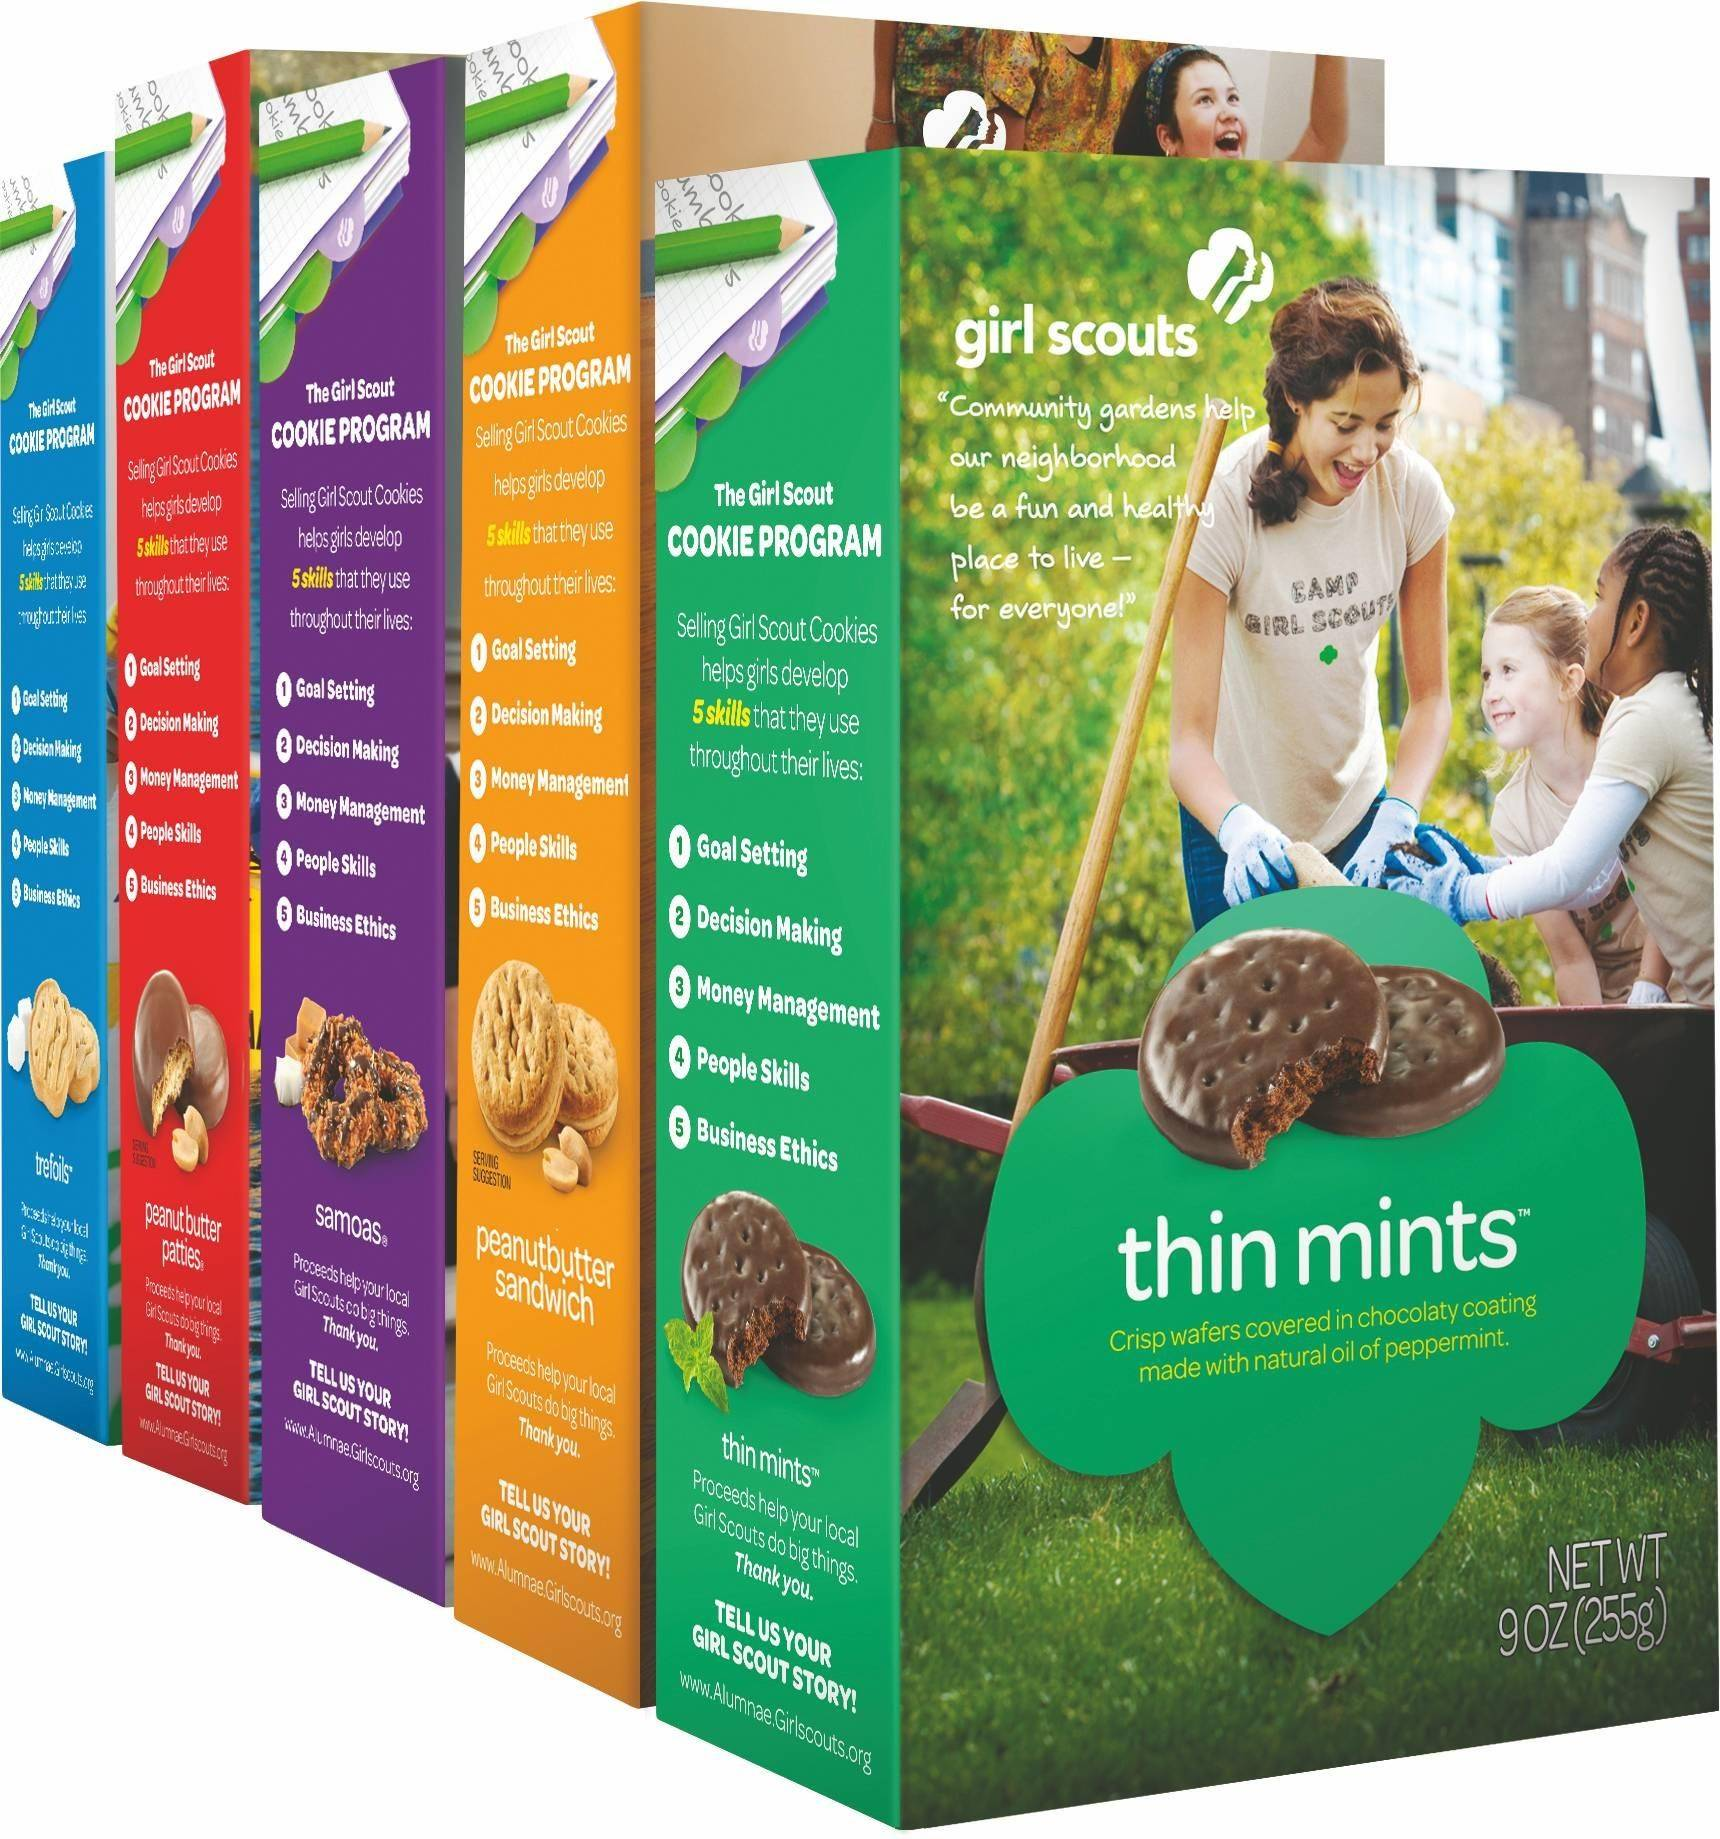 find your favorite girl scout cookies at a booth near you